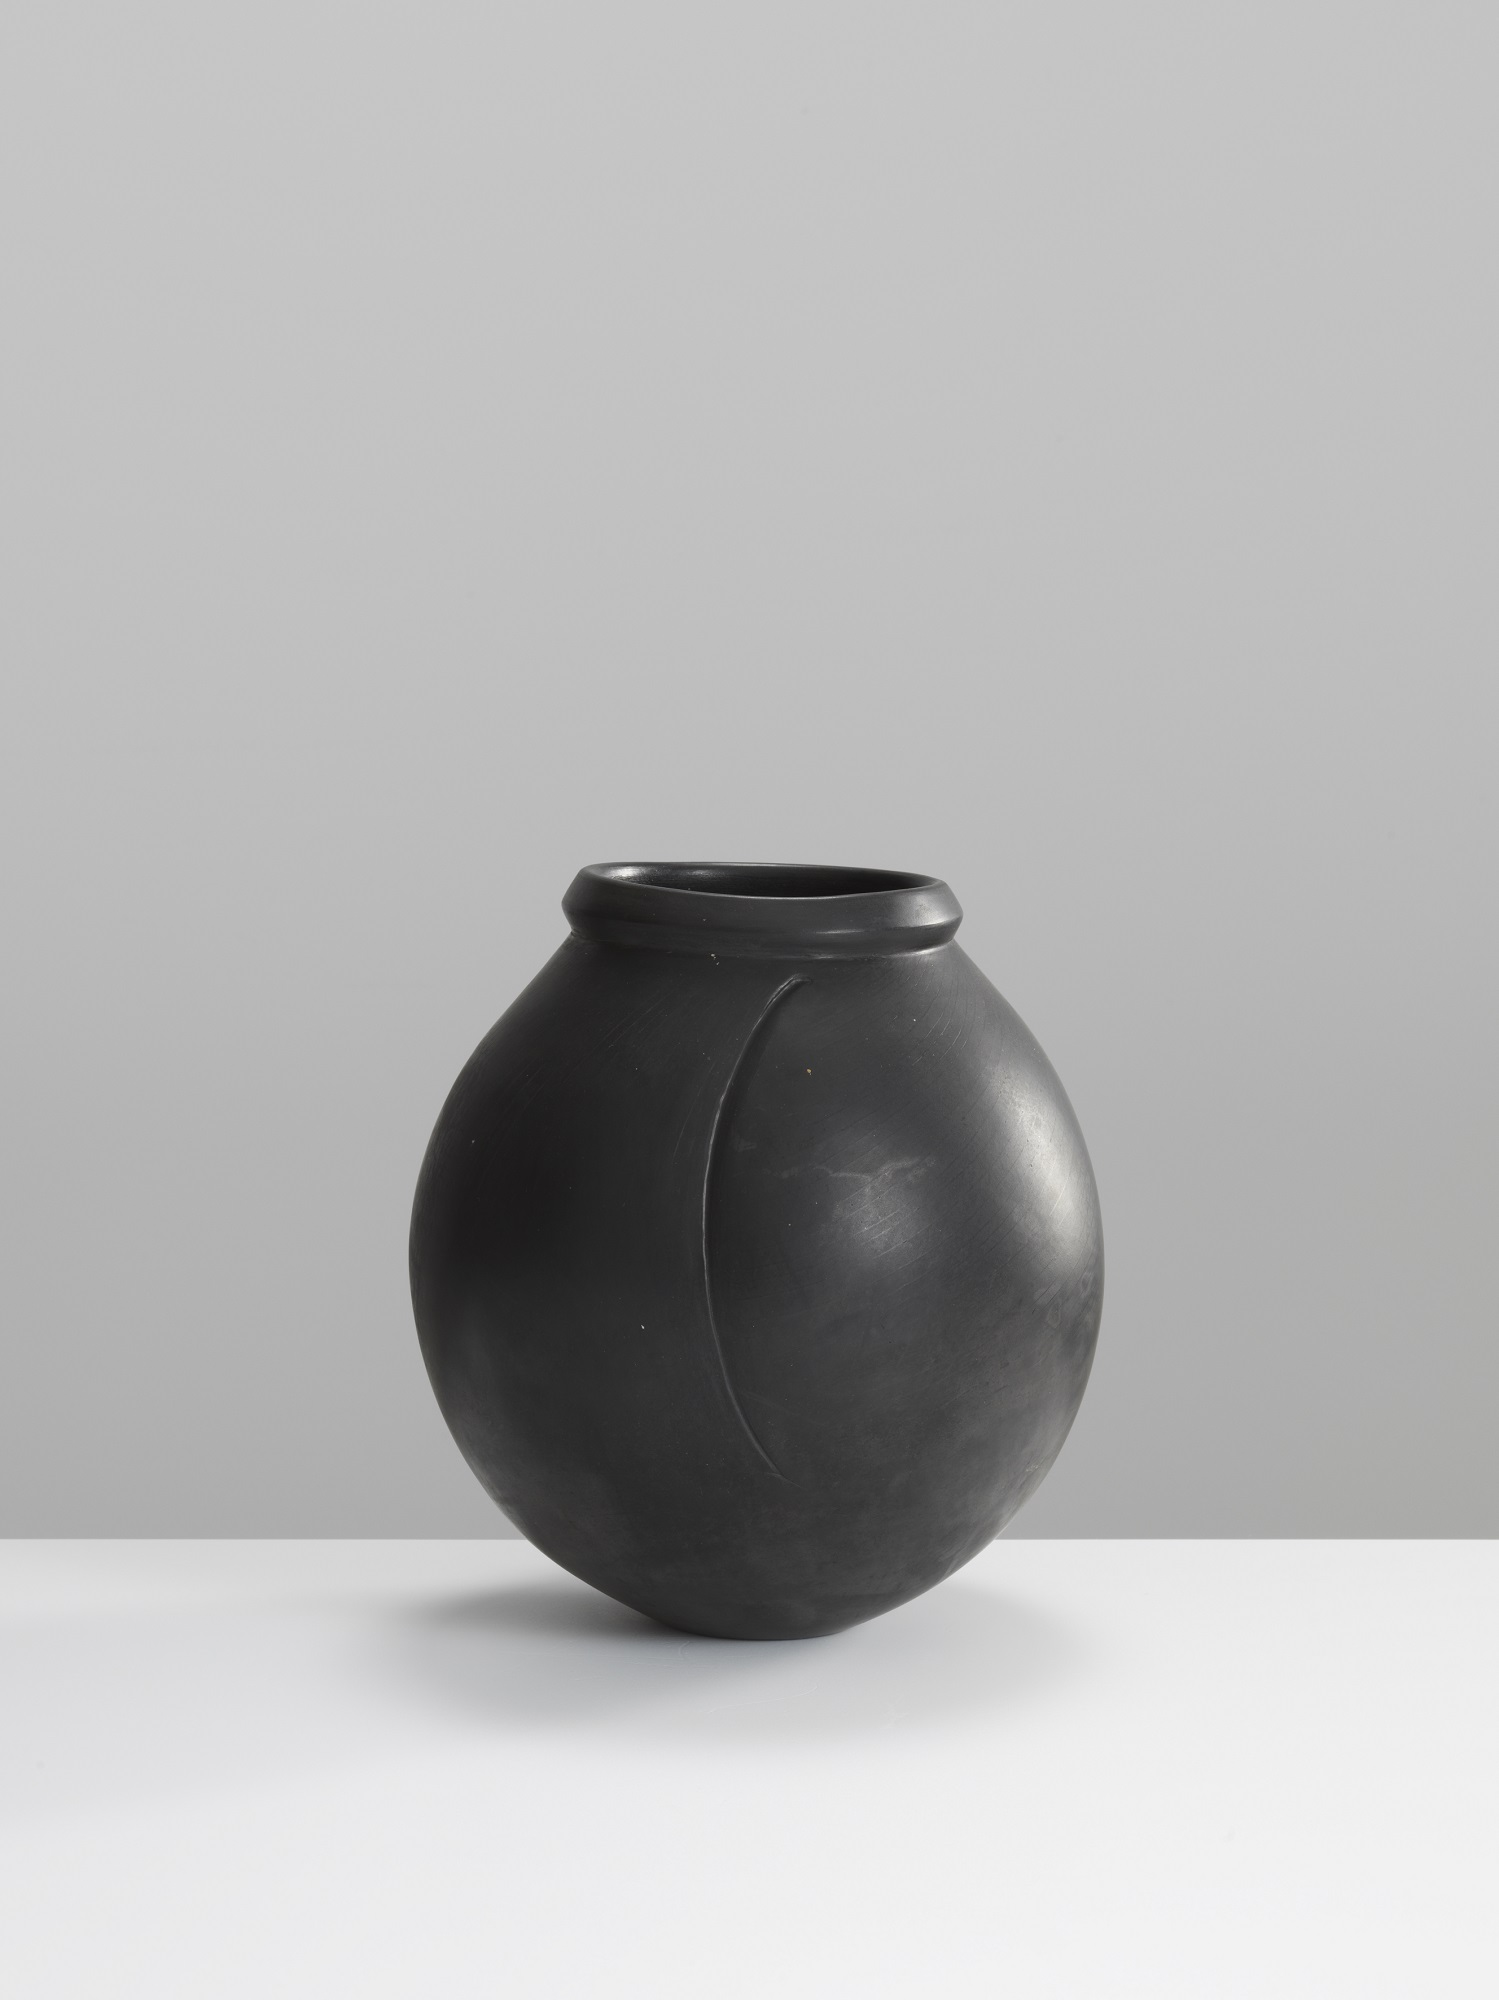 Magdalene Odundo,  Magdalene Odundo, Early Vessel, hand built, terra sigillata, polished and carbonised terracotta clay (23 x 18 cms) Image: Michael Harvey